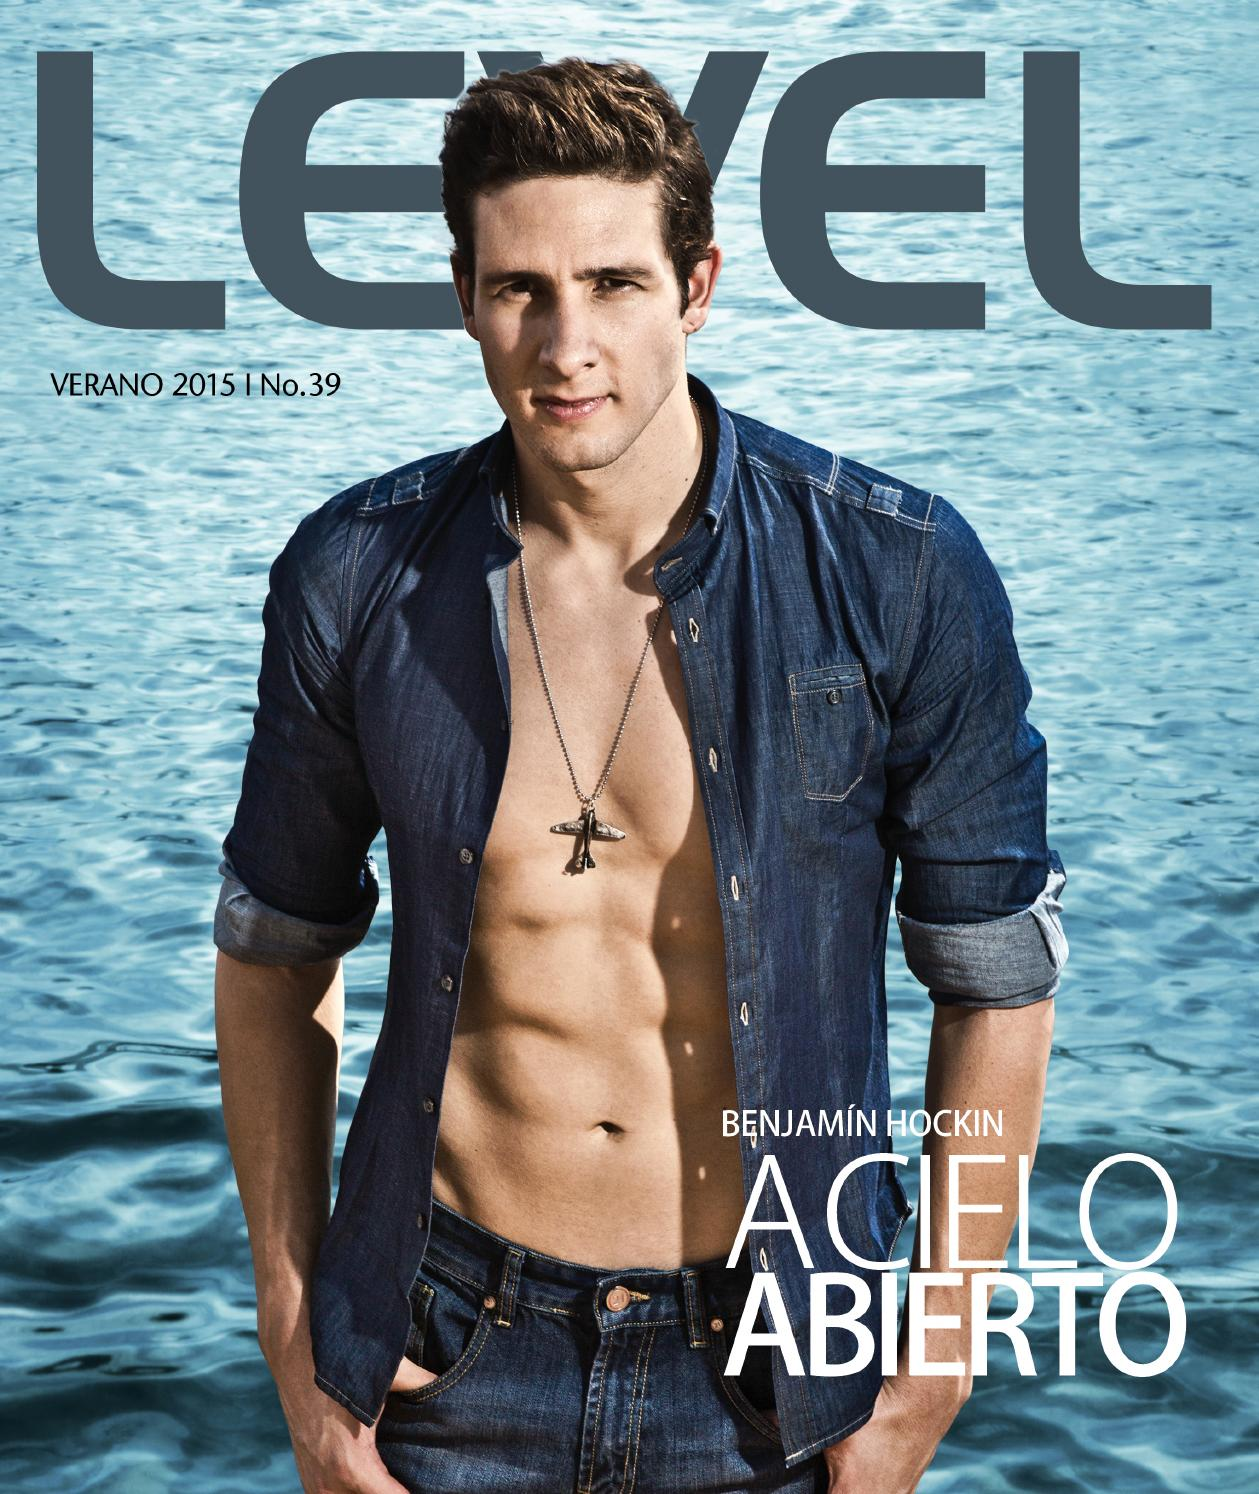 best website aad10 f7d62 Level Verano 2015 - A Cielo Abierto by Revista Level - issuu